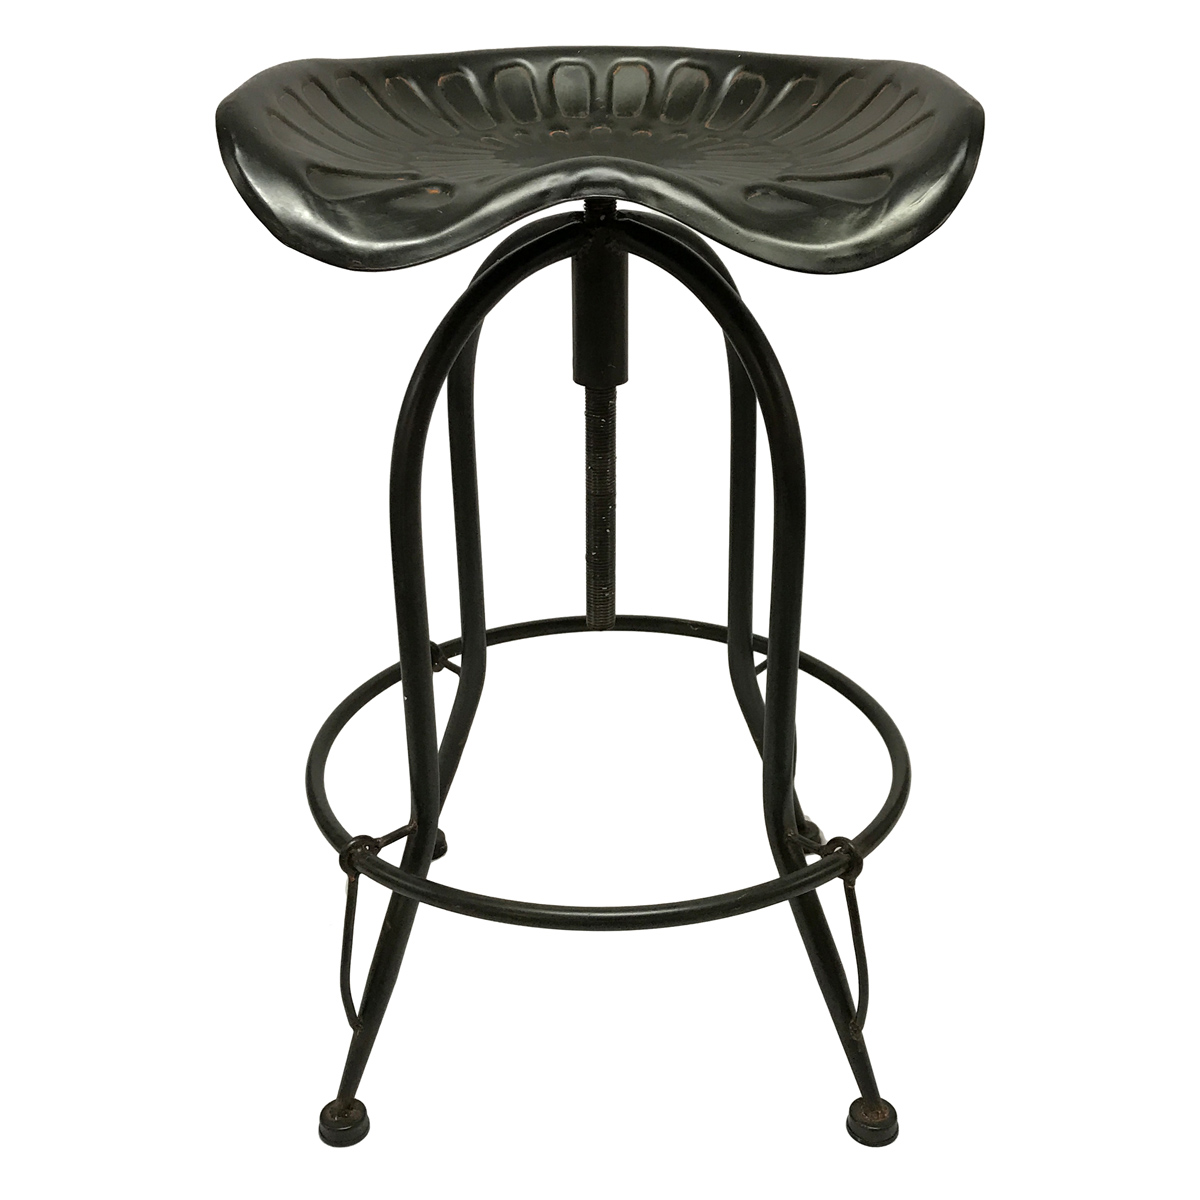 Admirable Barn Tractor Seat Barstool Lamtechconsult Wood Chair Design Ideas Lamtechconsultcom